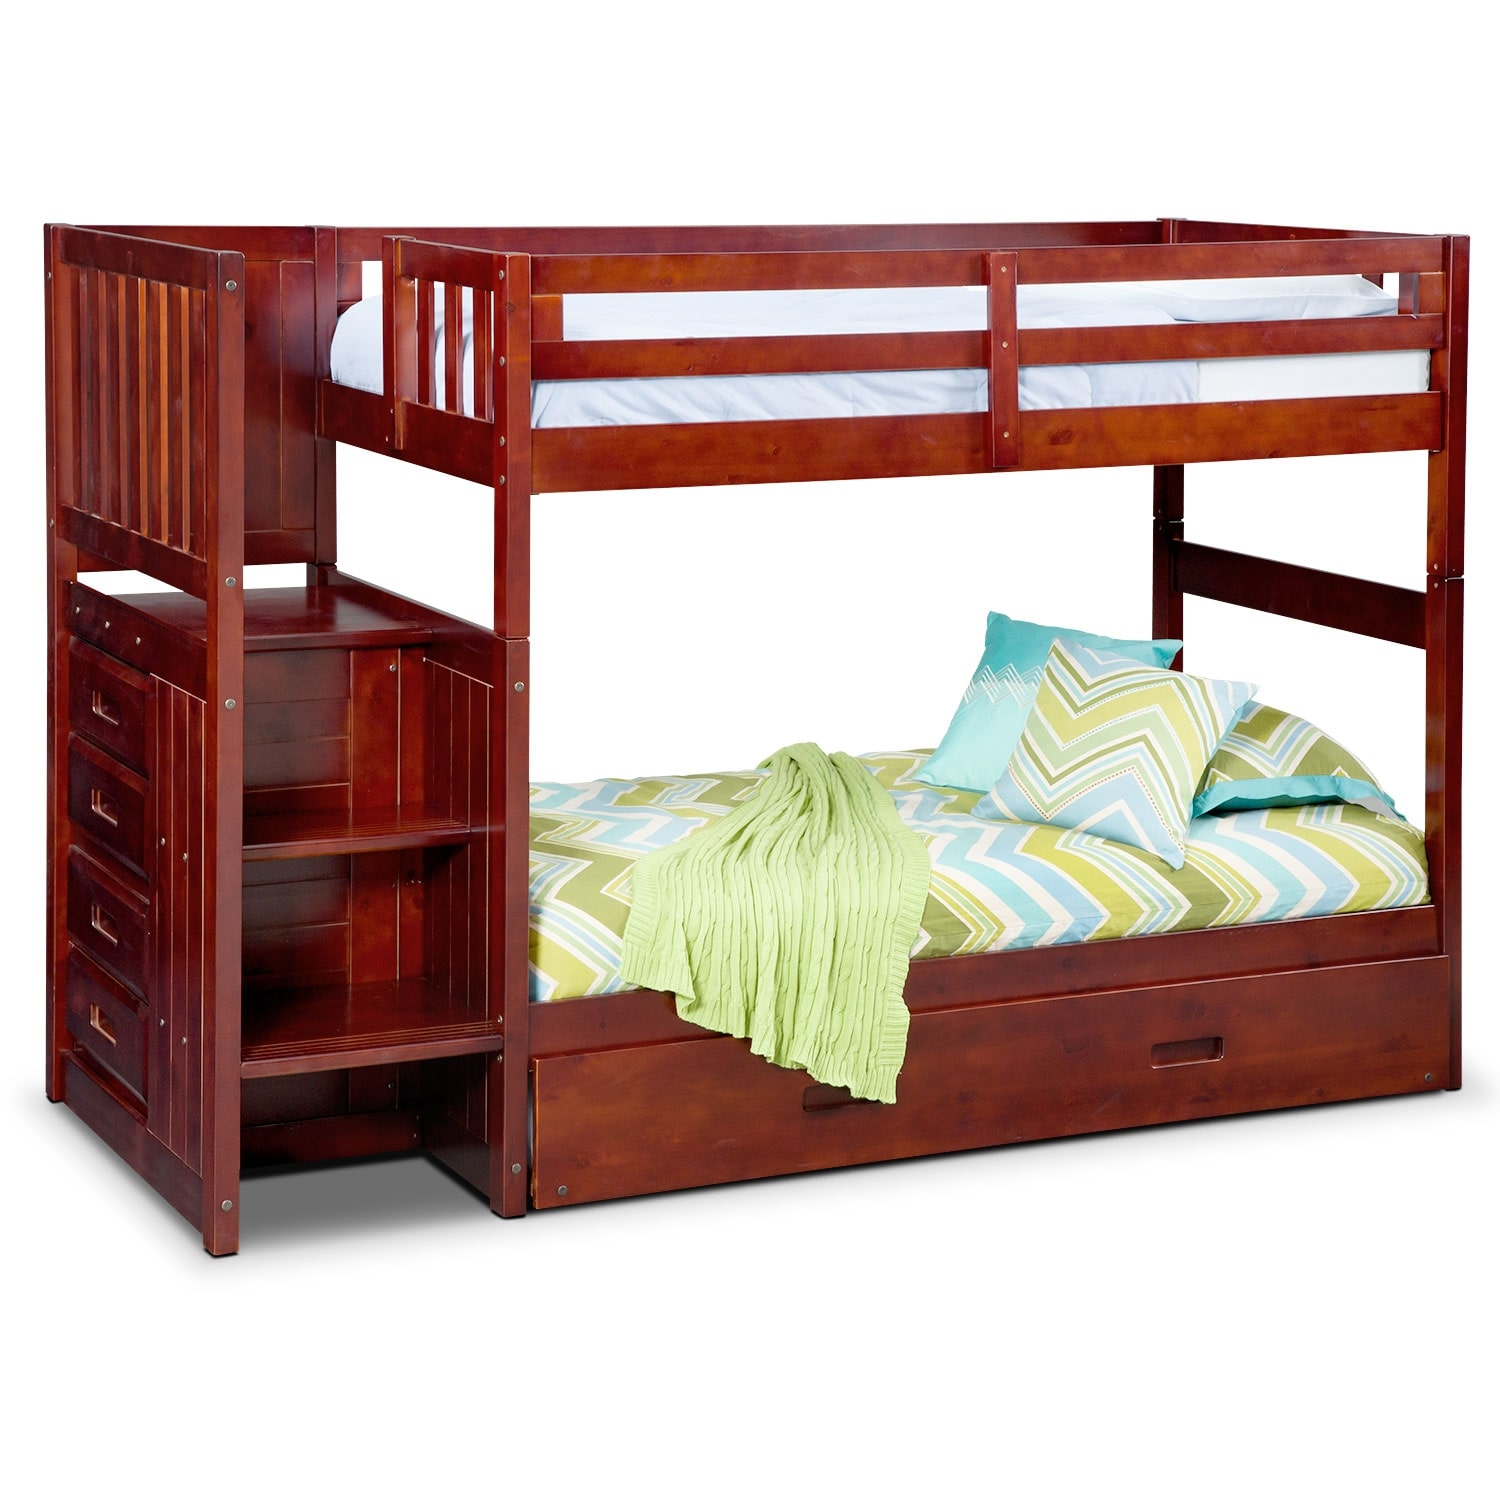 Kids Furniture - Ranger Merlot Twin/Twin Bunk Bed with Stairs, Storage and Trundle